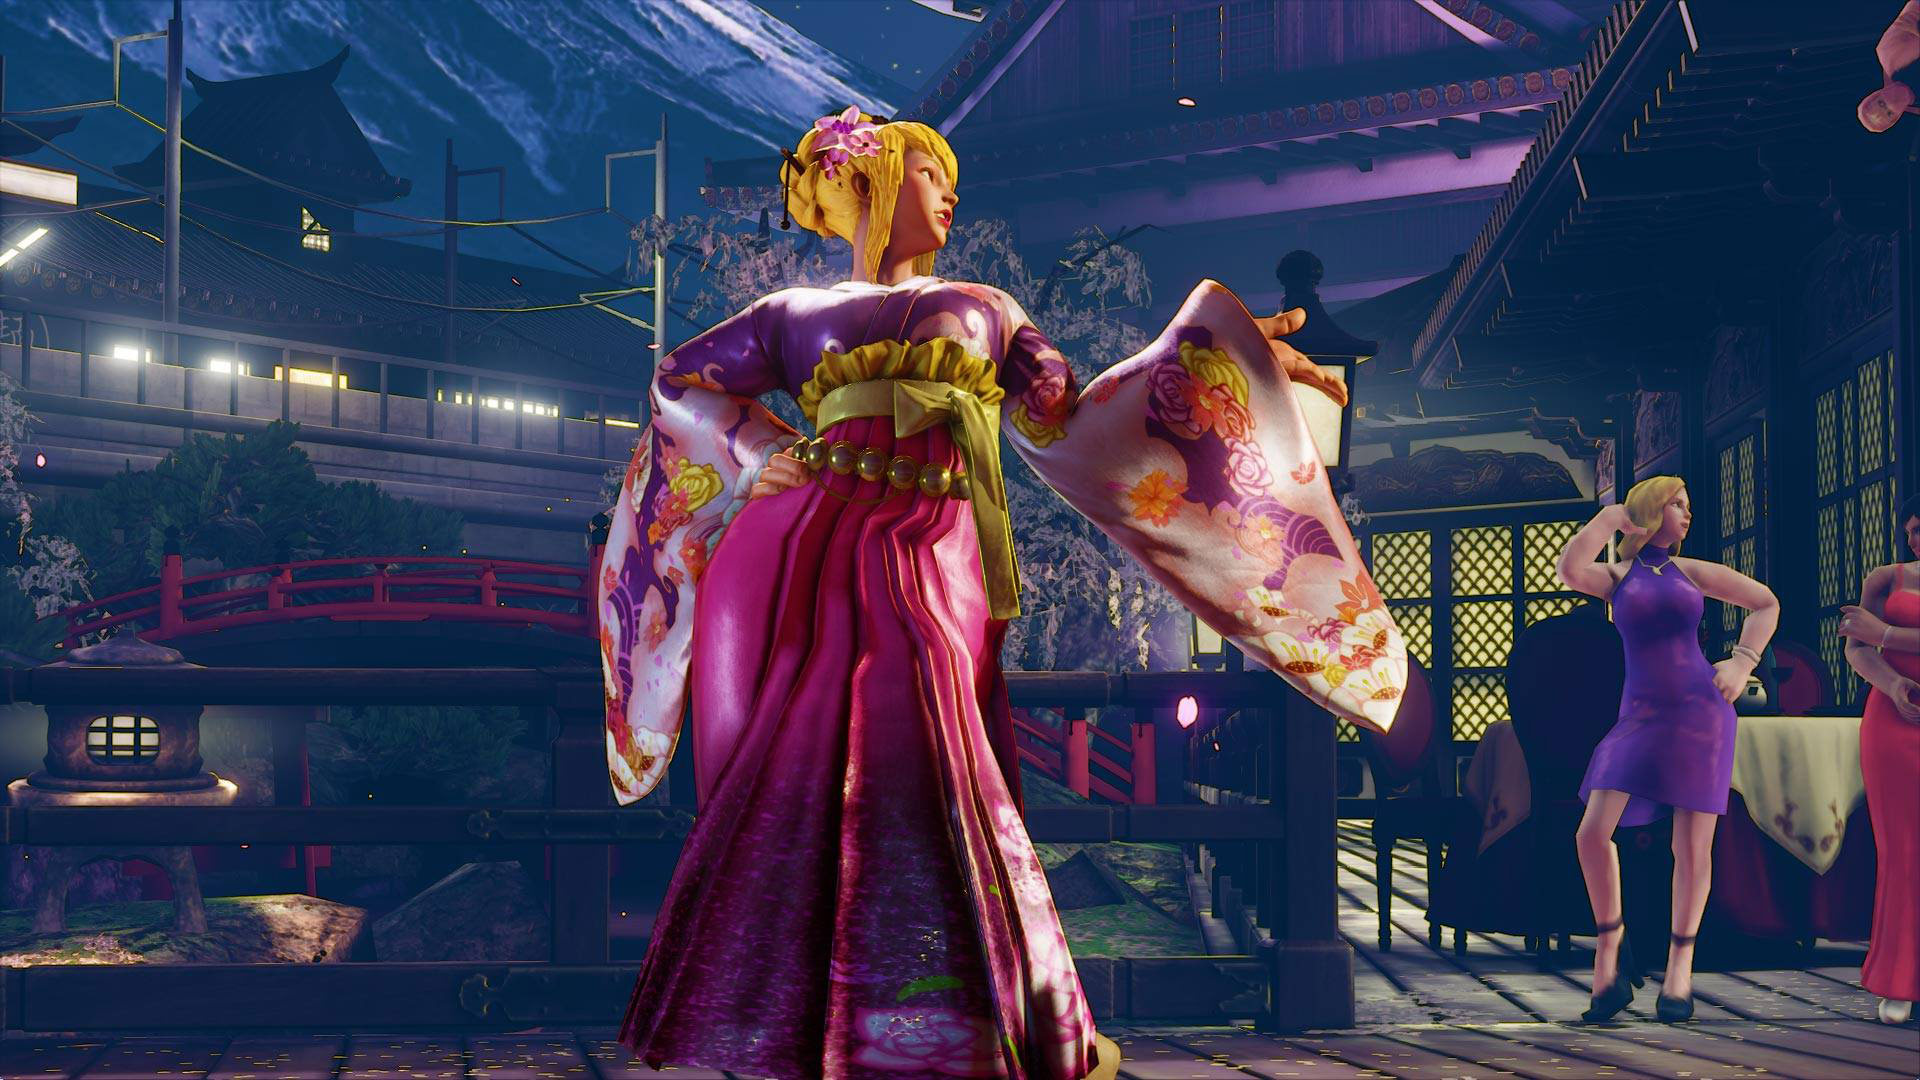 New Street Fighter 5 30th anniversary costumes 5 out of 6 image gallery